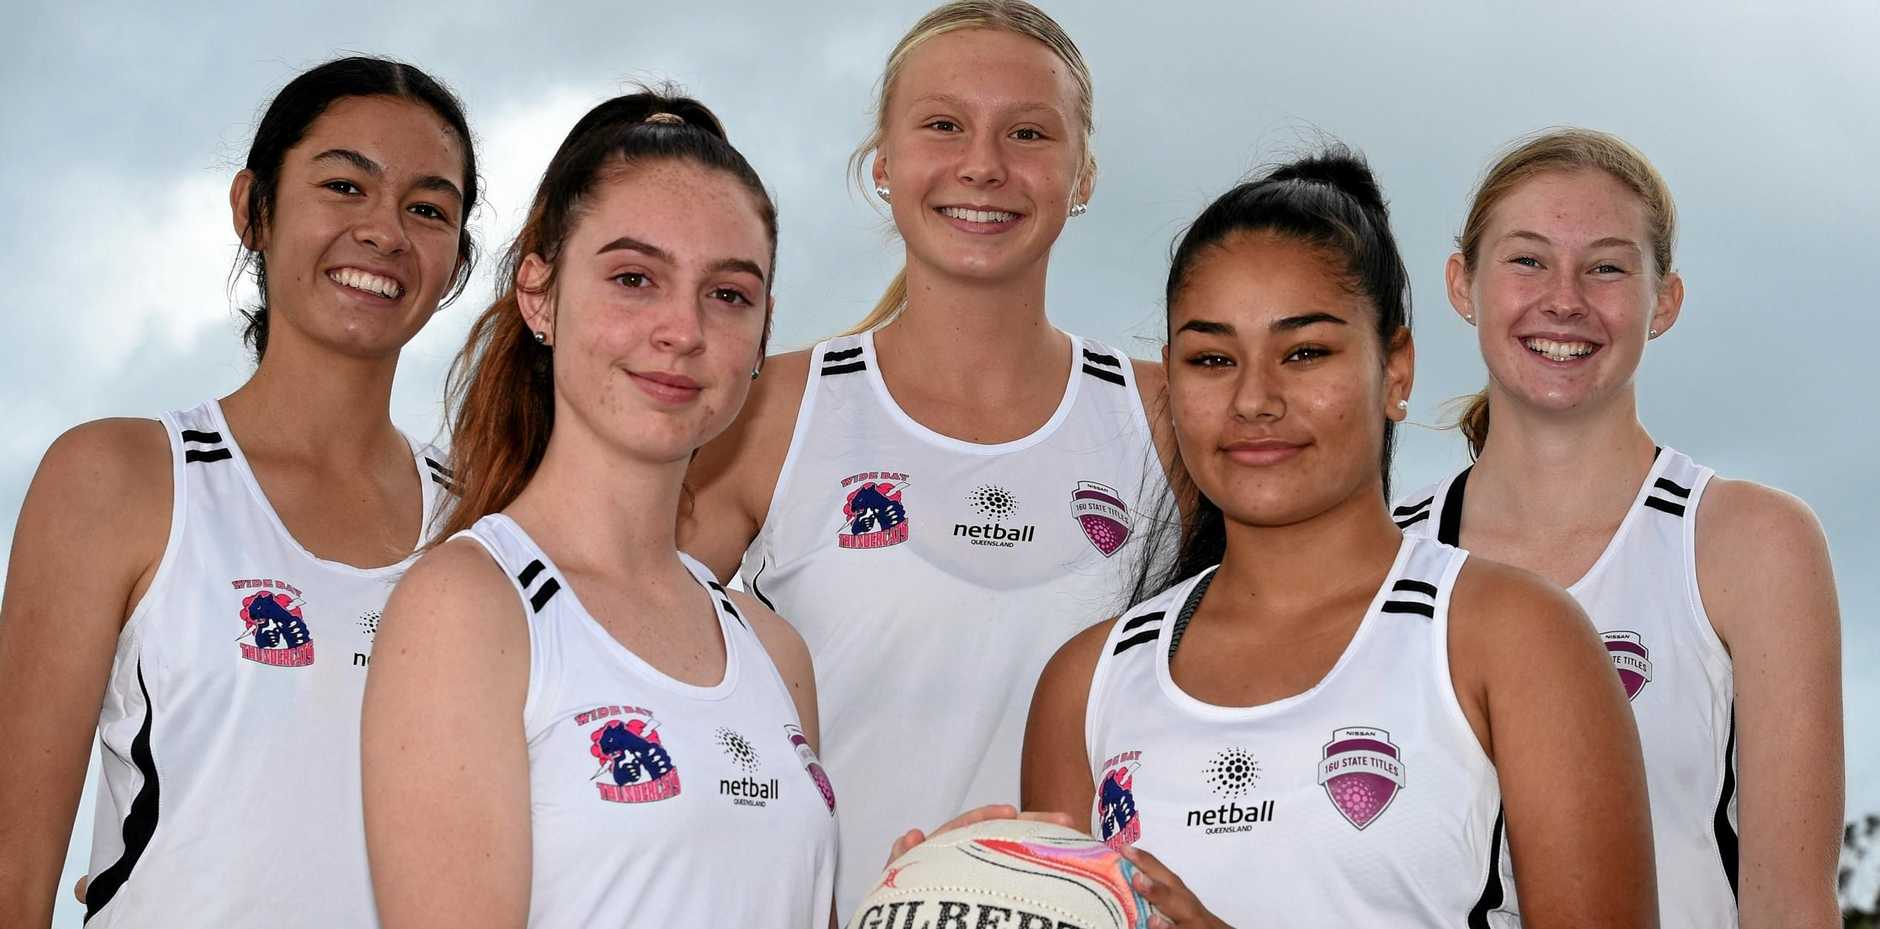 REP DUTY: Hervey Bay netballers selected for Wide Bay Thundercats' under-16s. Back: Grace Farrelly, Keira Stephens, Brooke Harvey. Front: Sophie Harvey and Tamara Anderson.